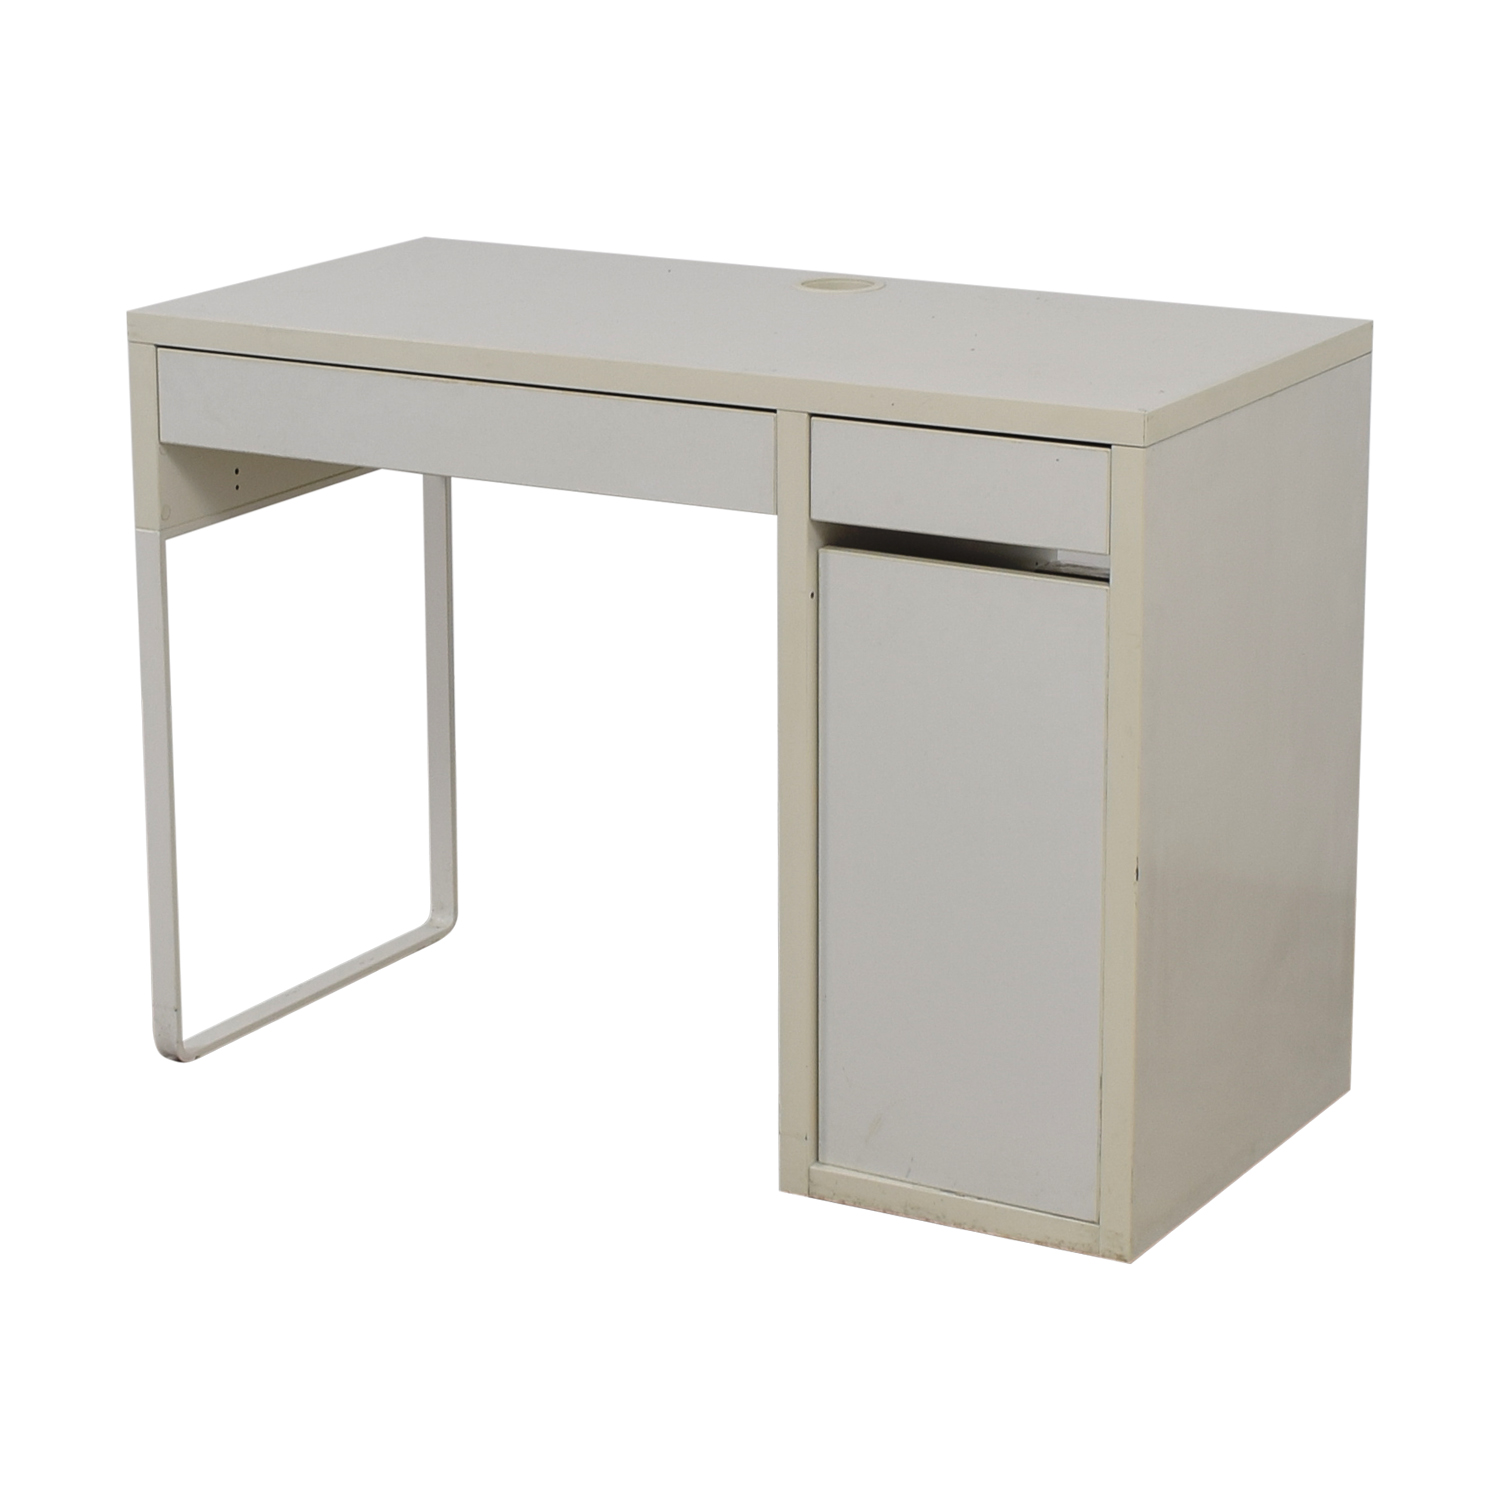 used-two-drawer-white-desk-with-high-rover-and-printer-storage Home Office Furniture Two Workstations on home office desk chairs, office cubicles workstations, home office station, home office uk, home office organization ideas, home styles furniture, home office plans, call center furniture workstations, home office workstation ideas, home office couch, home office multiple monitors, office computer workstations, home office room, herman miller workstations, home office using kitchen cabinets, home office furnishings, hon furniture workstations, modern office workstations, used office workstations, home rooms furniture,